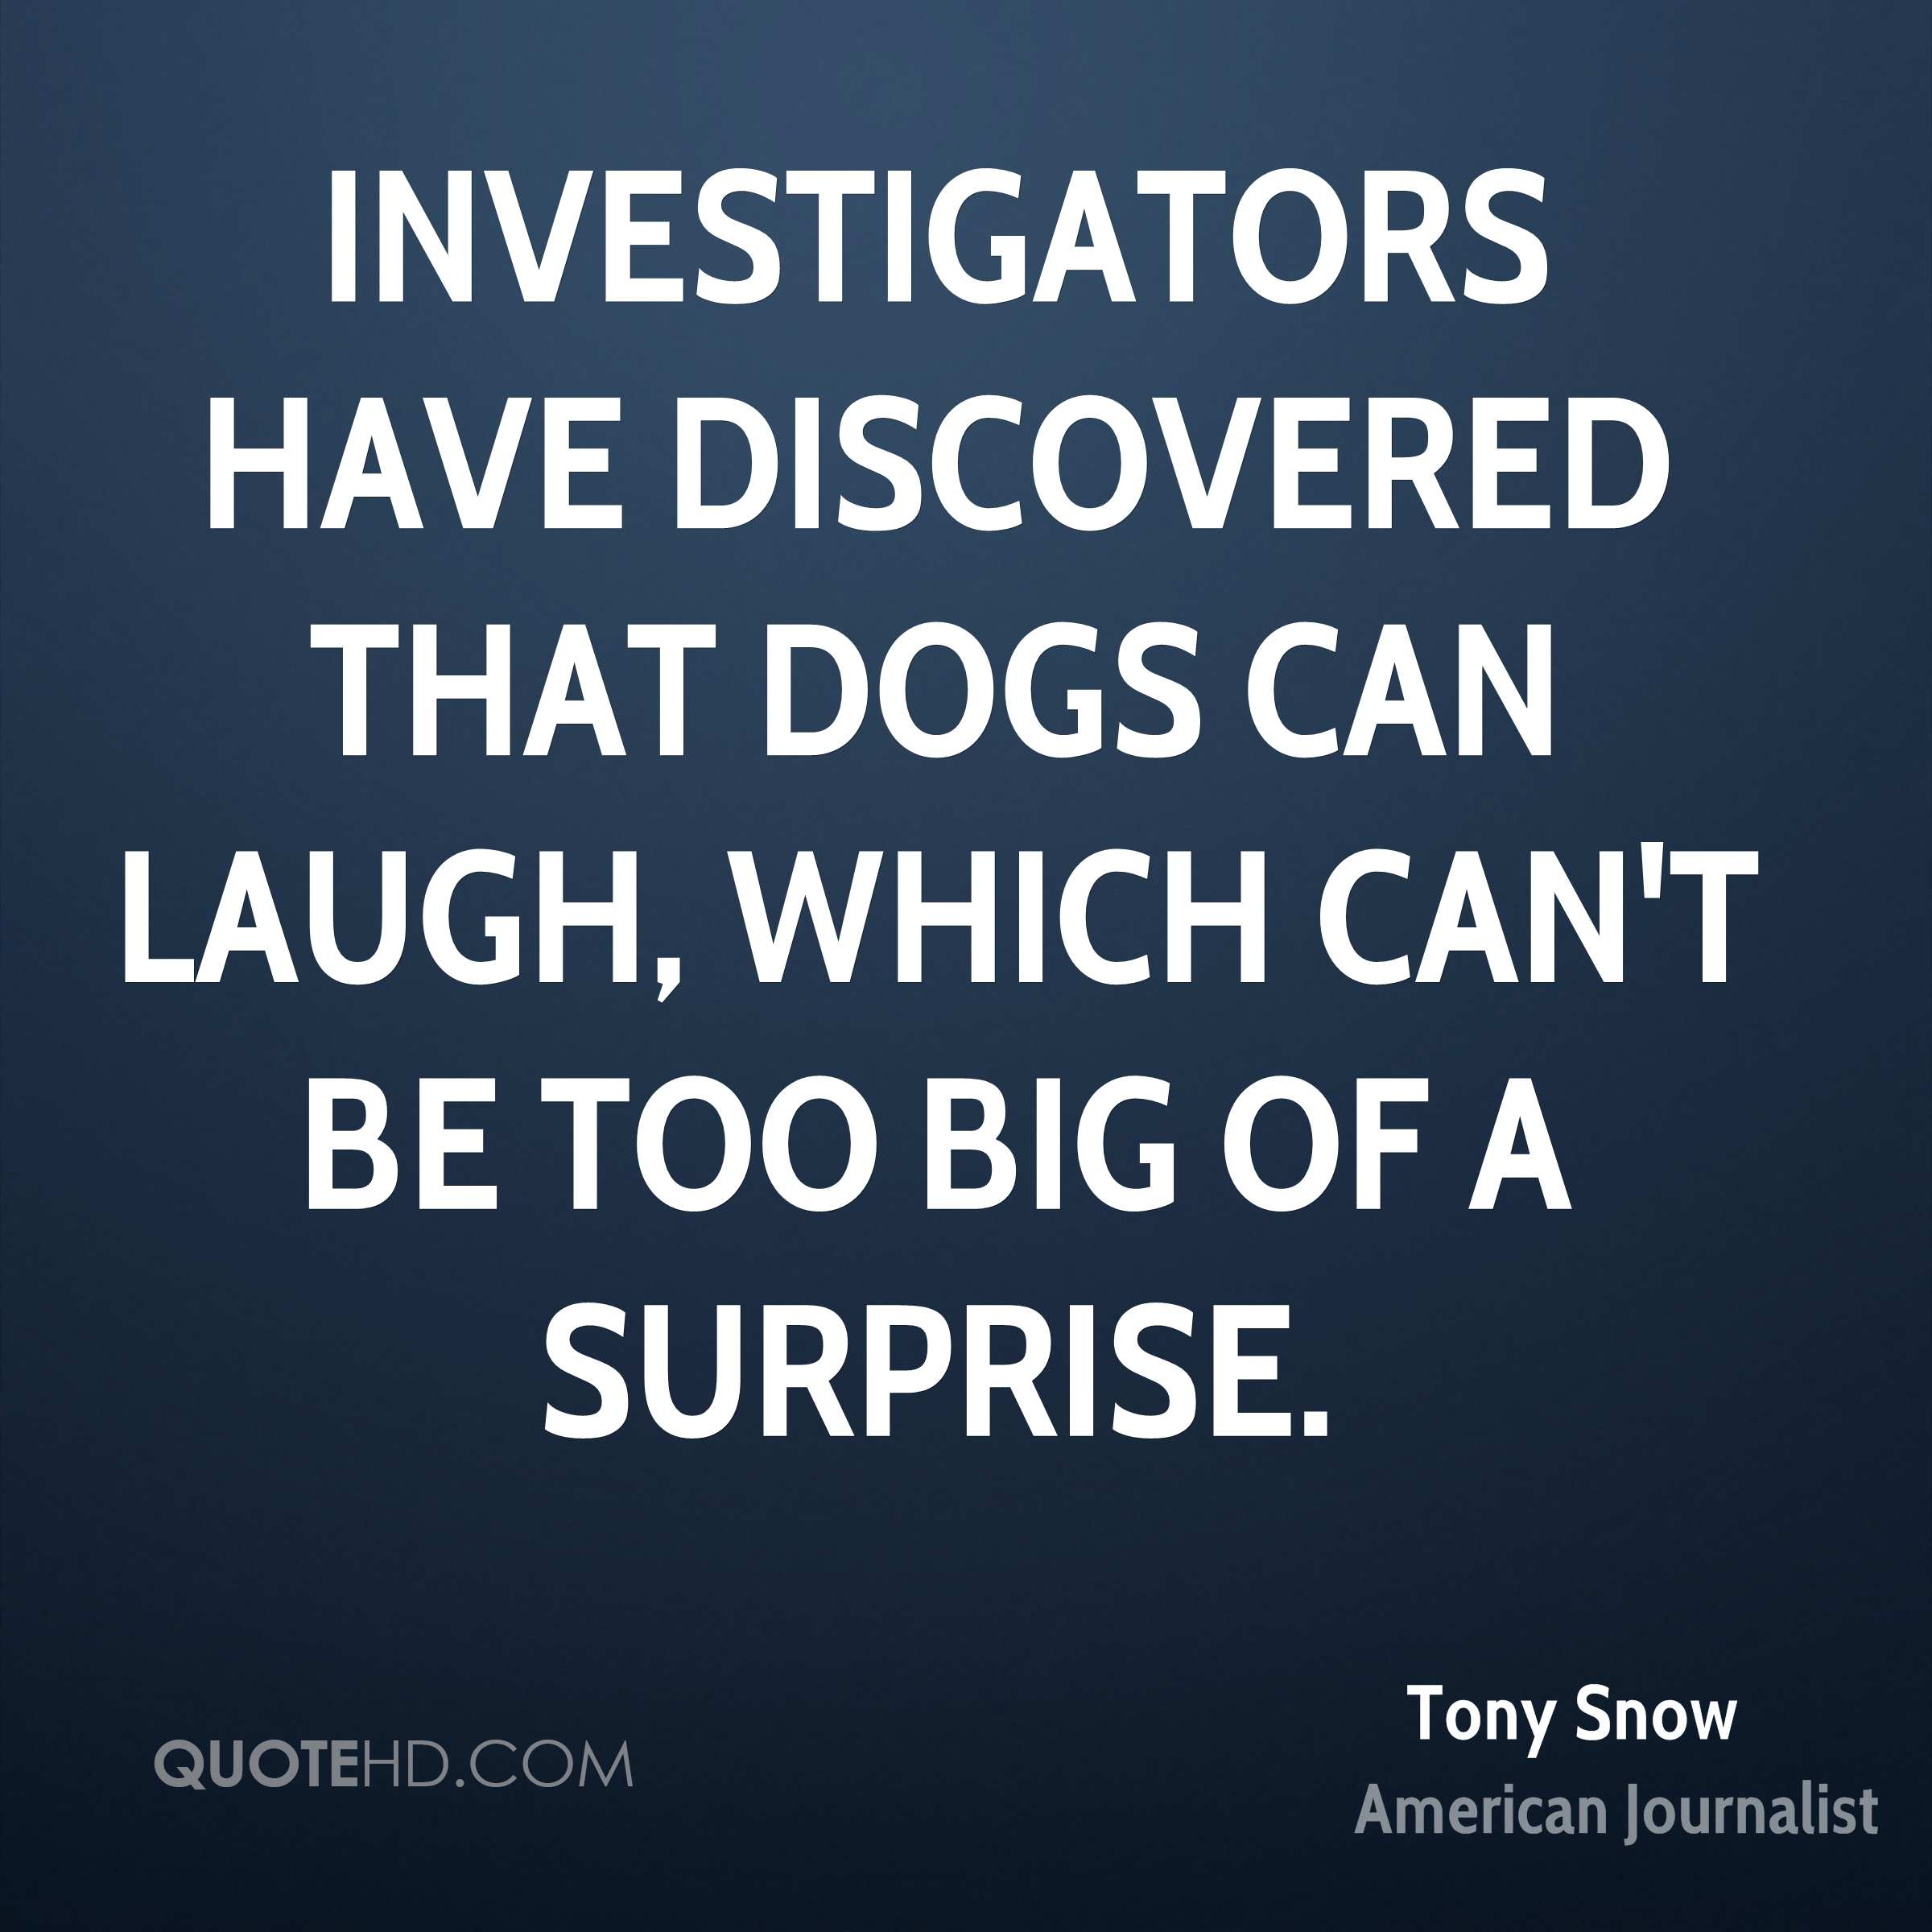 Investigators have discovered that dogs can laugh, which can't be too big of a surprise.